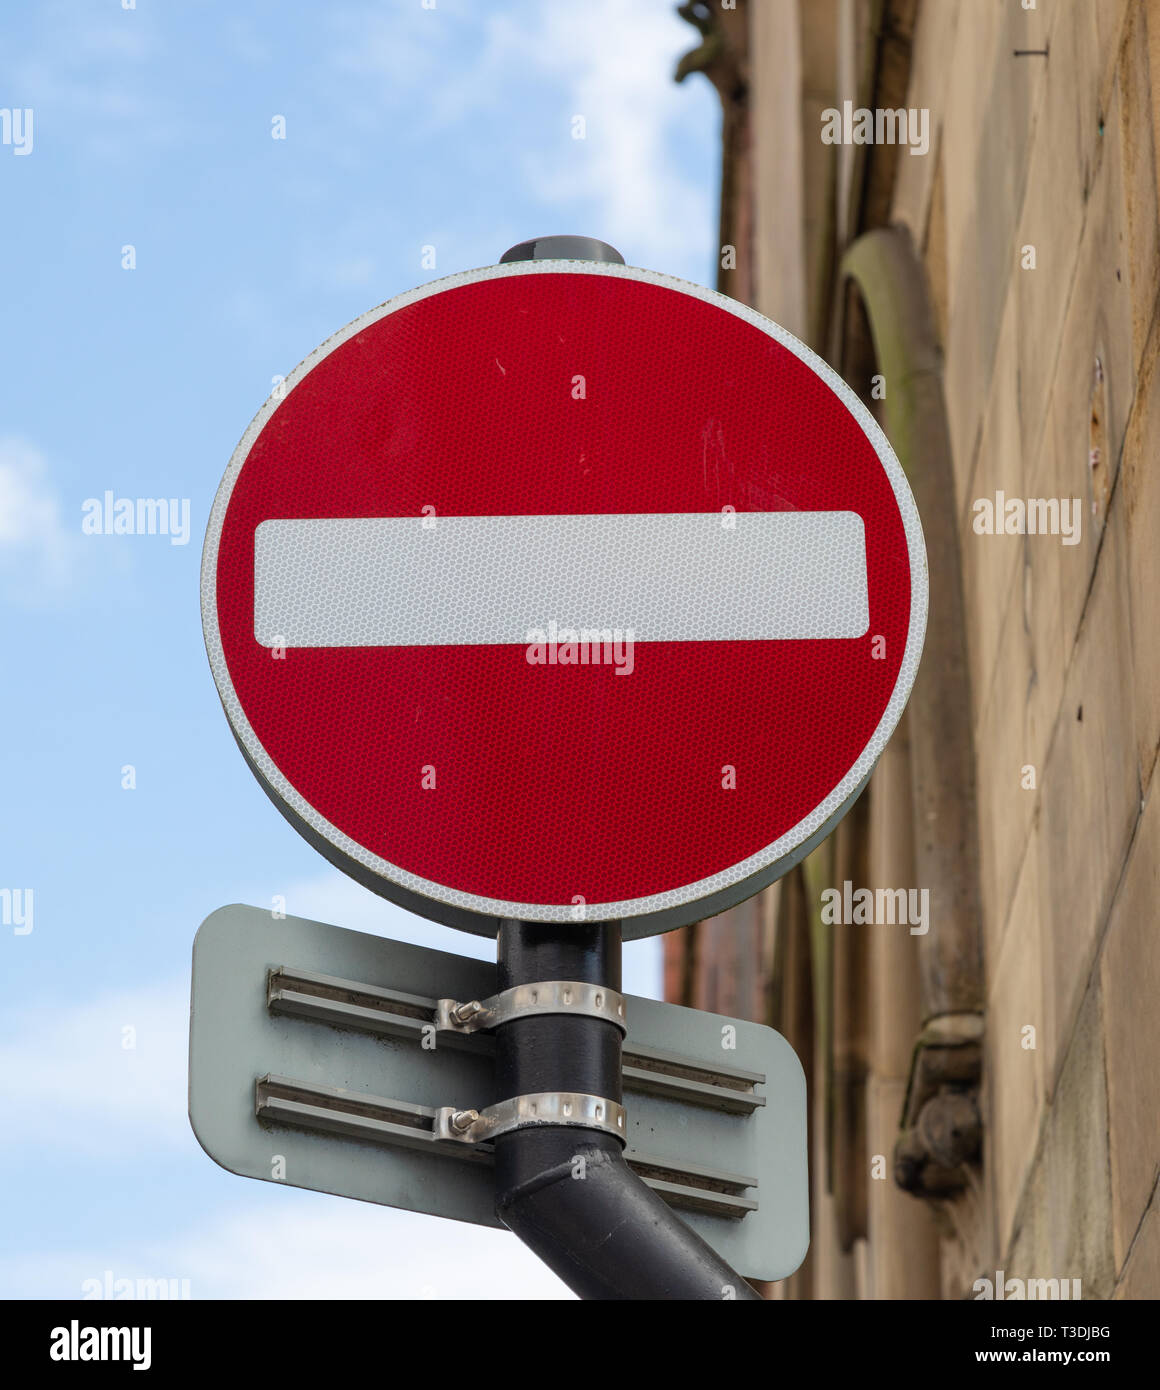 Red and white no entry street sign St Helens Lancashire March 2019 Stock Photo